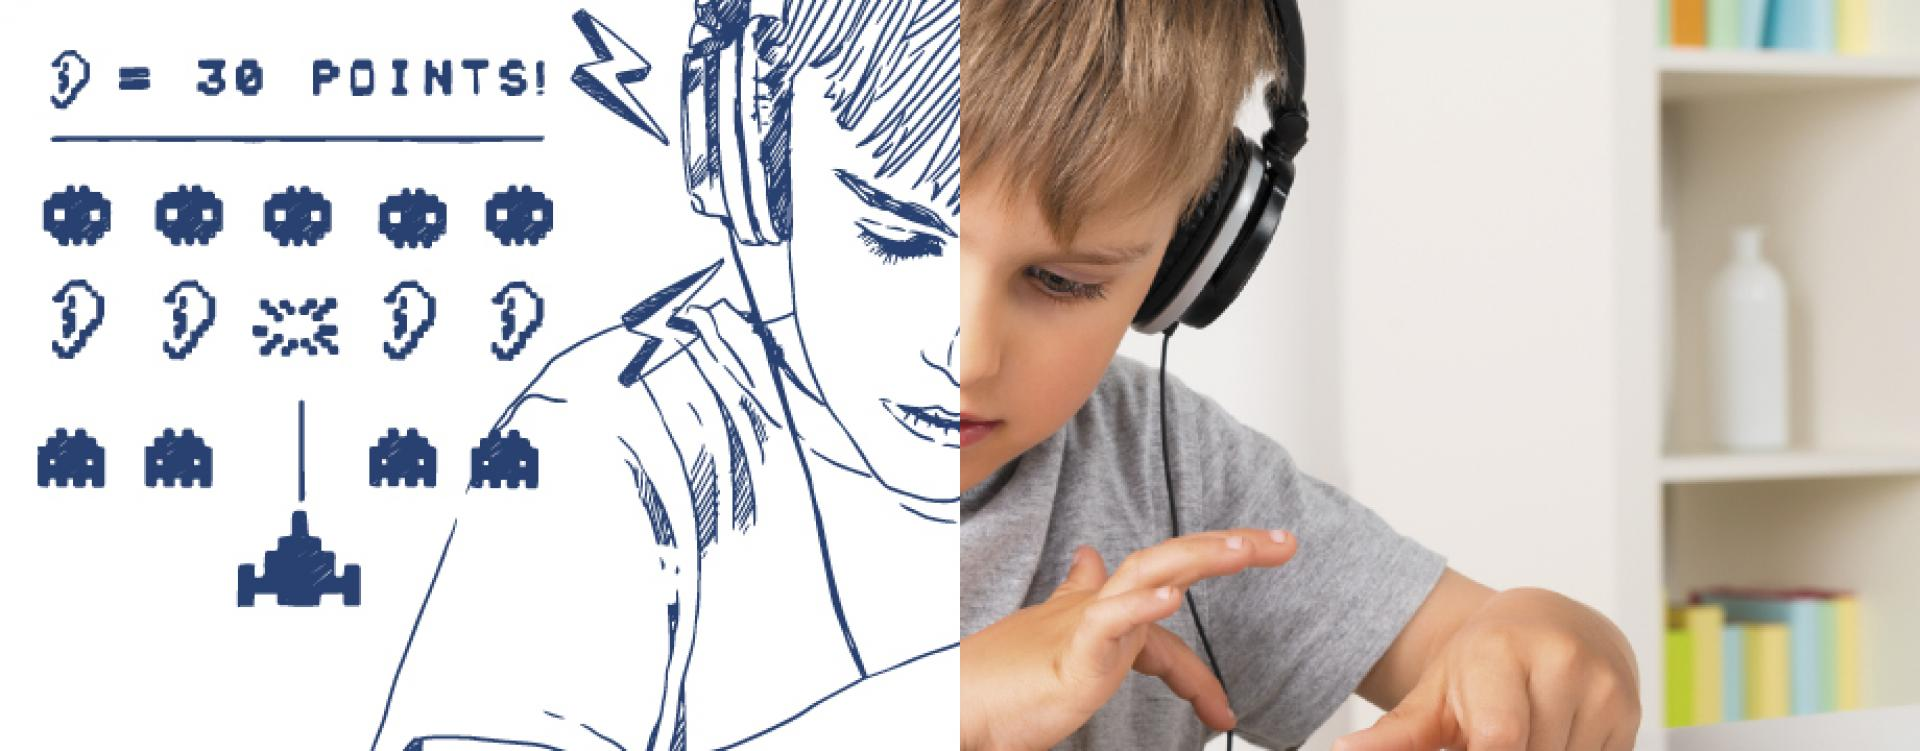 ITL Child with headphones